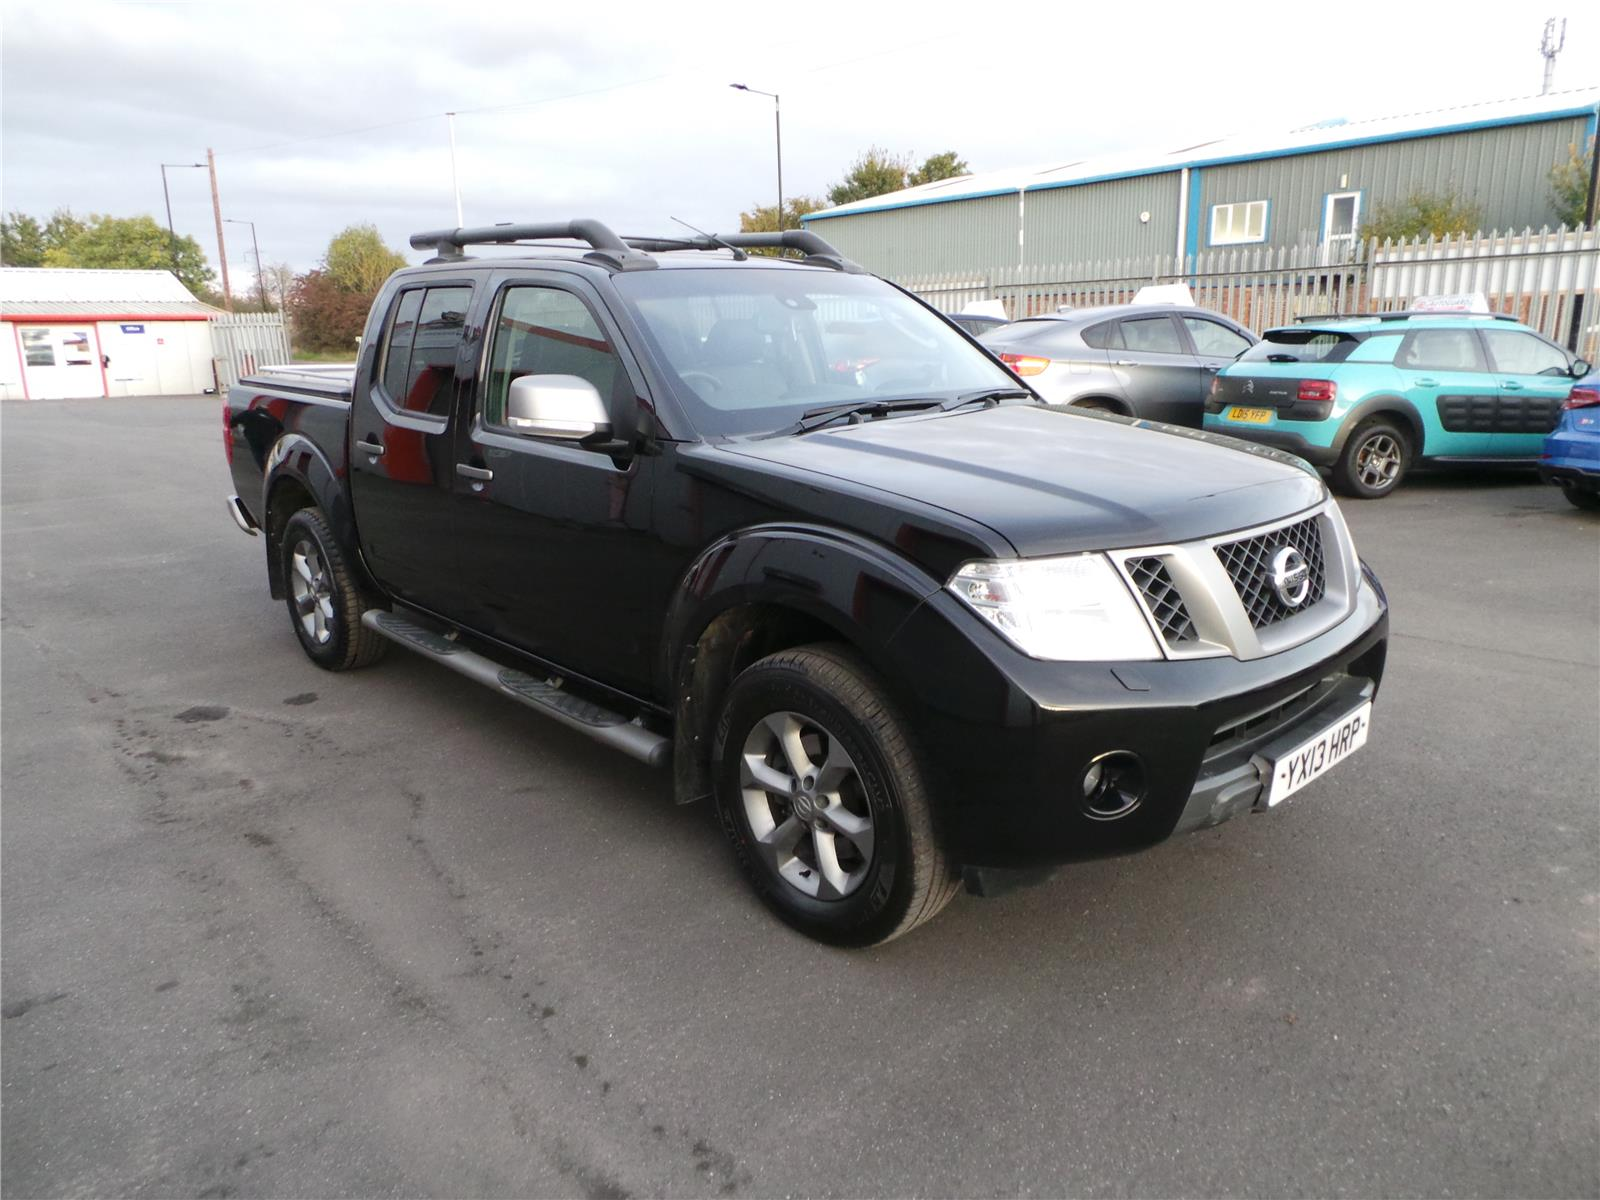 2013 Nissan Navara Platinum 2488 Diesel Manual 6 Speed Pick-Up